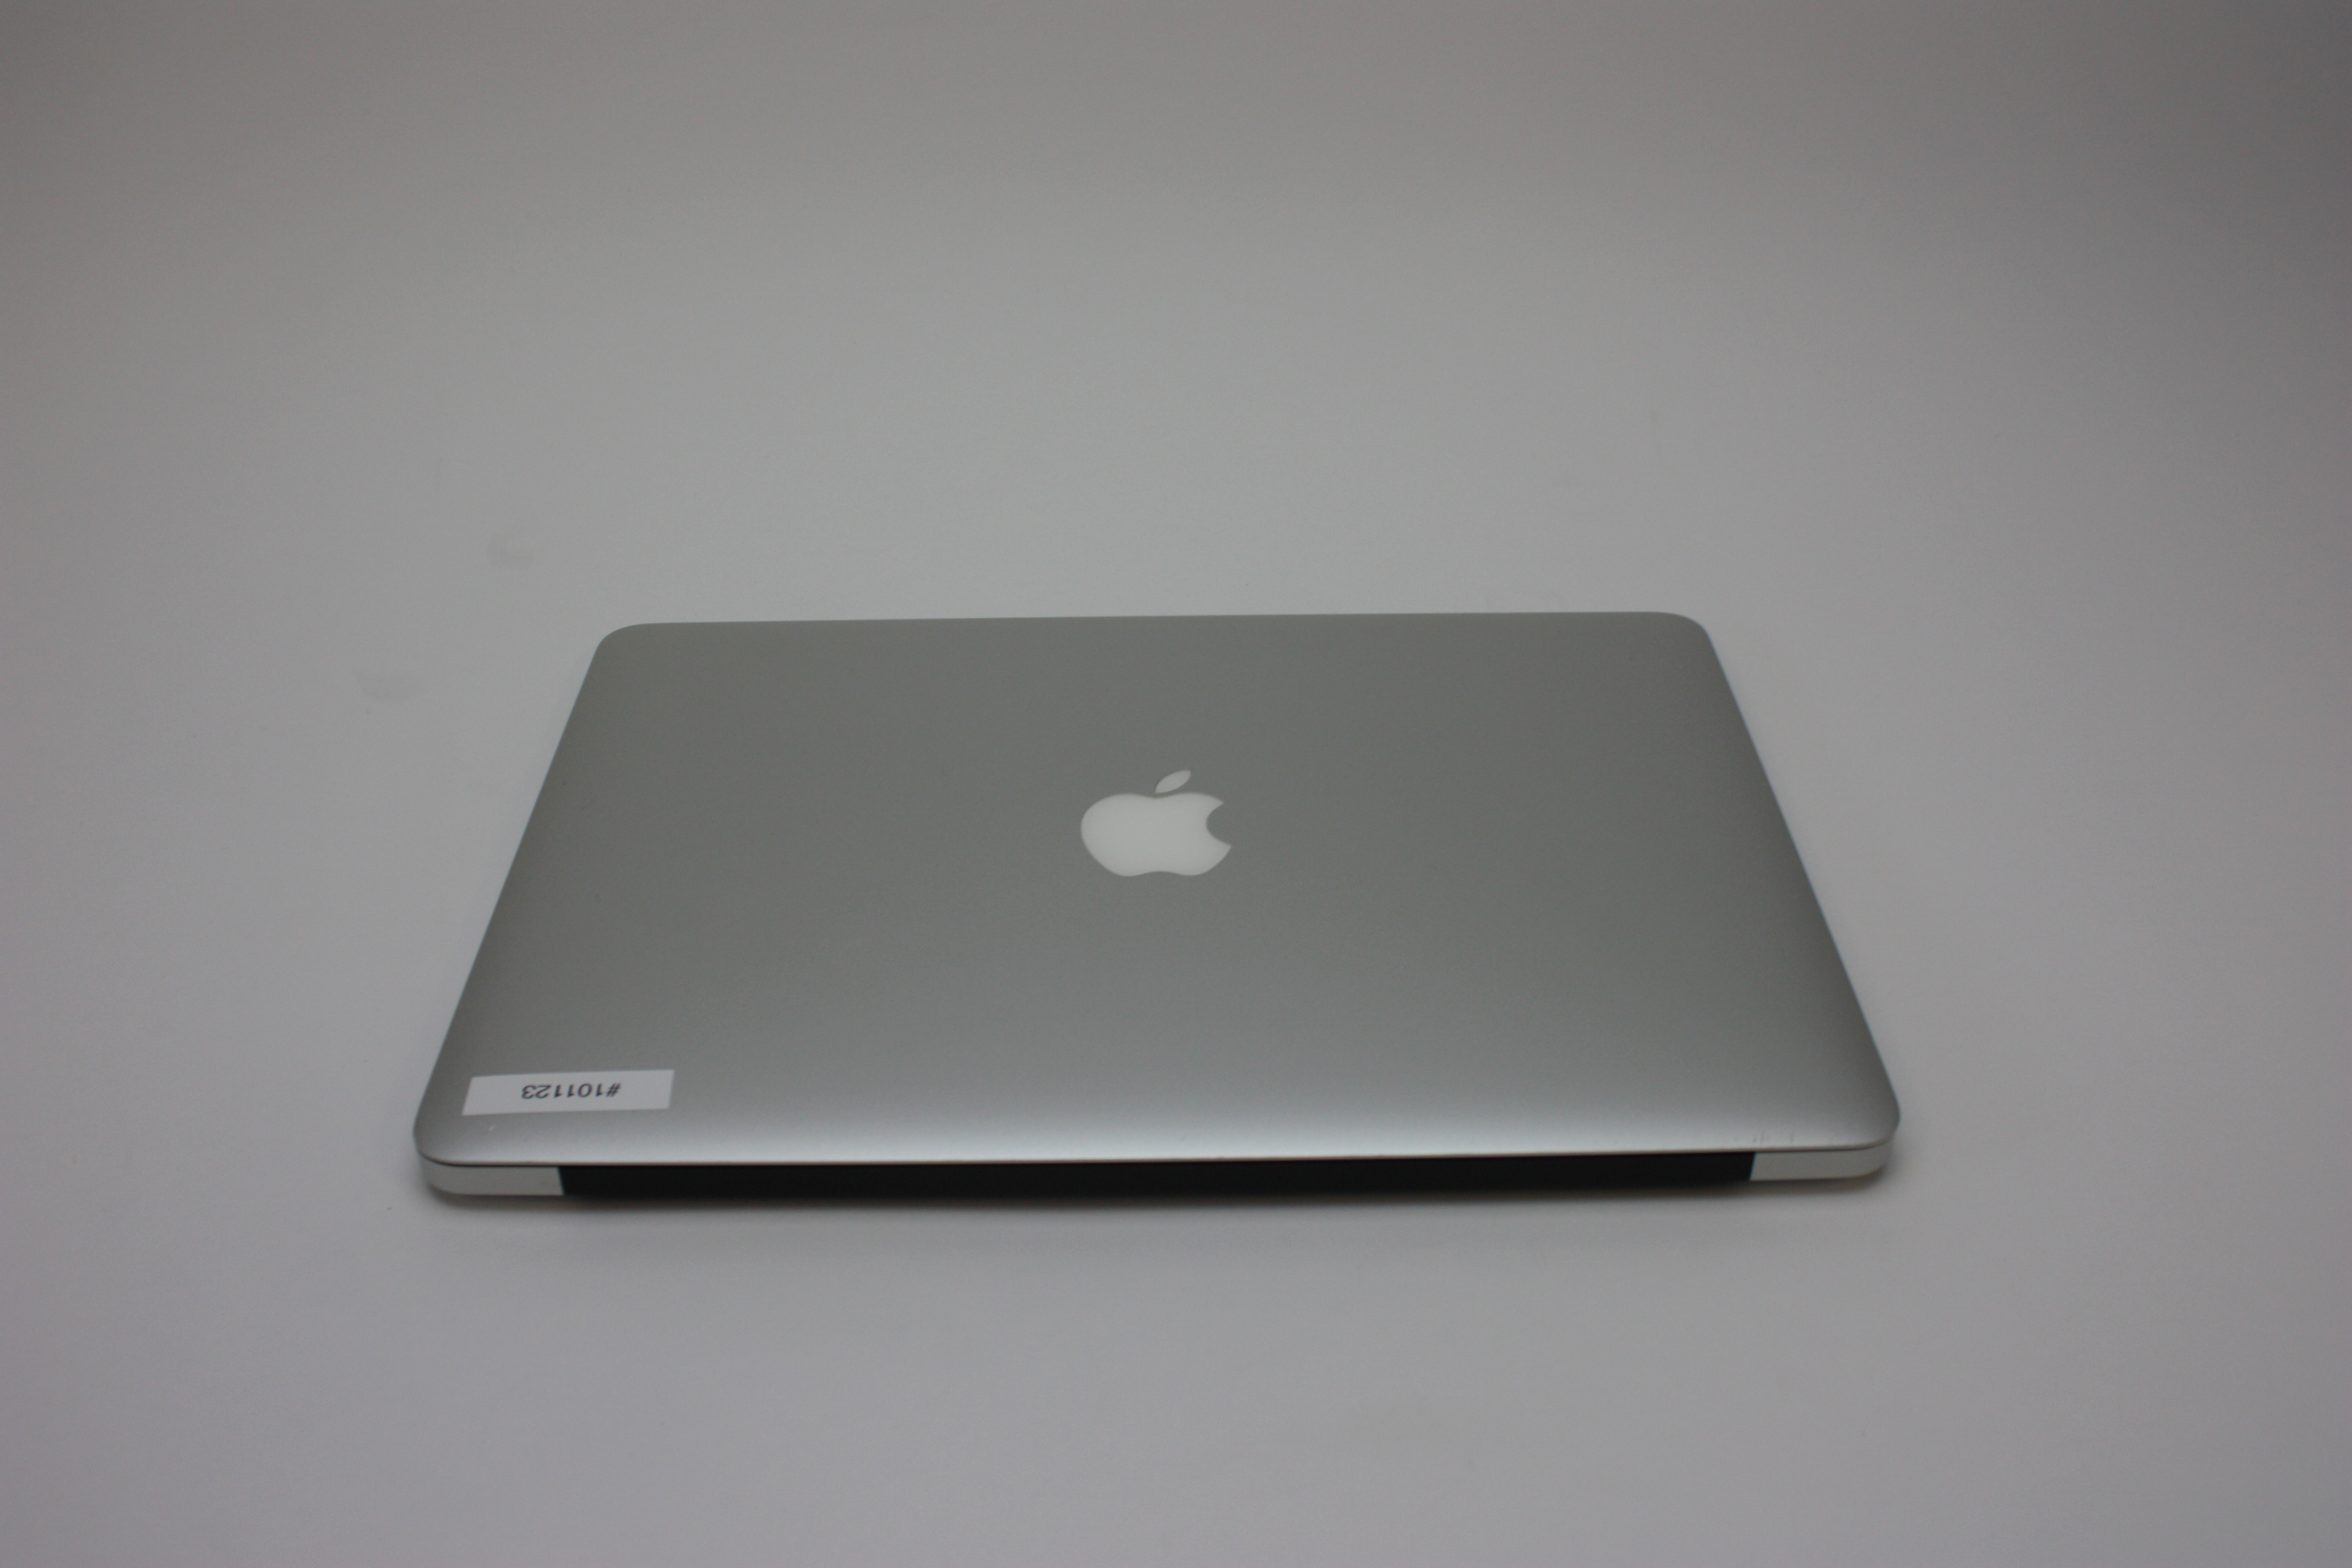 MacBook Air 13-inch, 1.4 GHz Intel Core i5, 4 GB 1600 MHz DDR3, 128 GB Flash Storage, Product age: 43 months, image 6